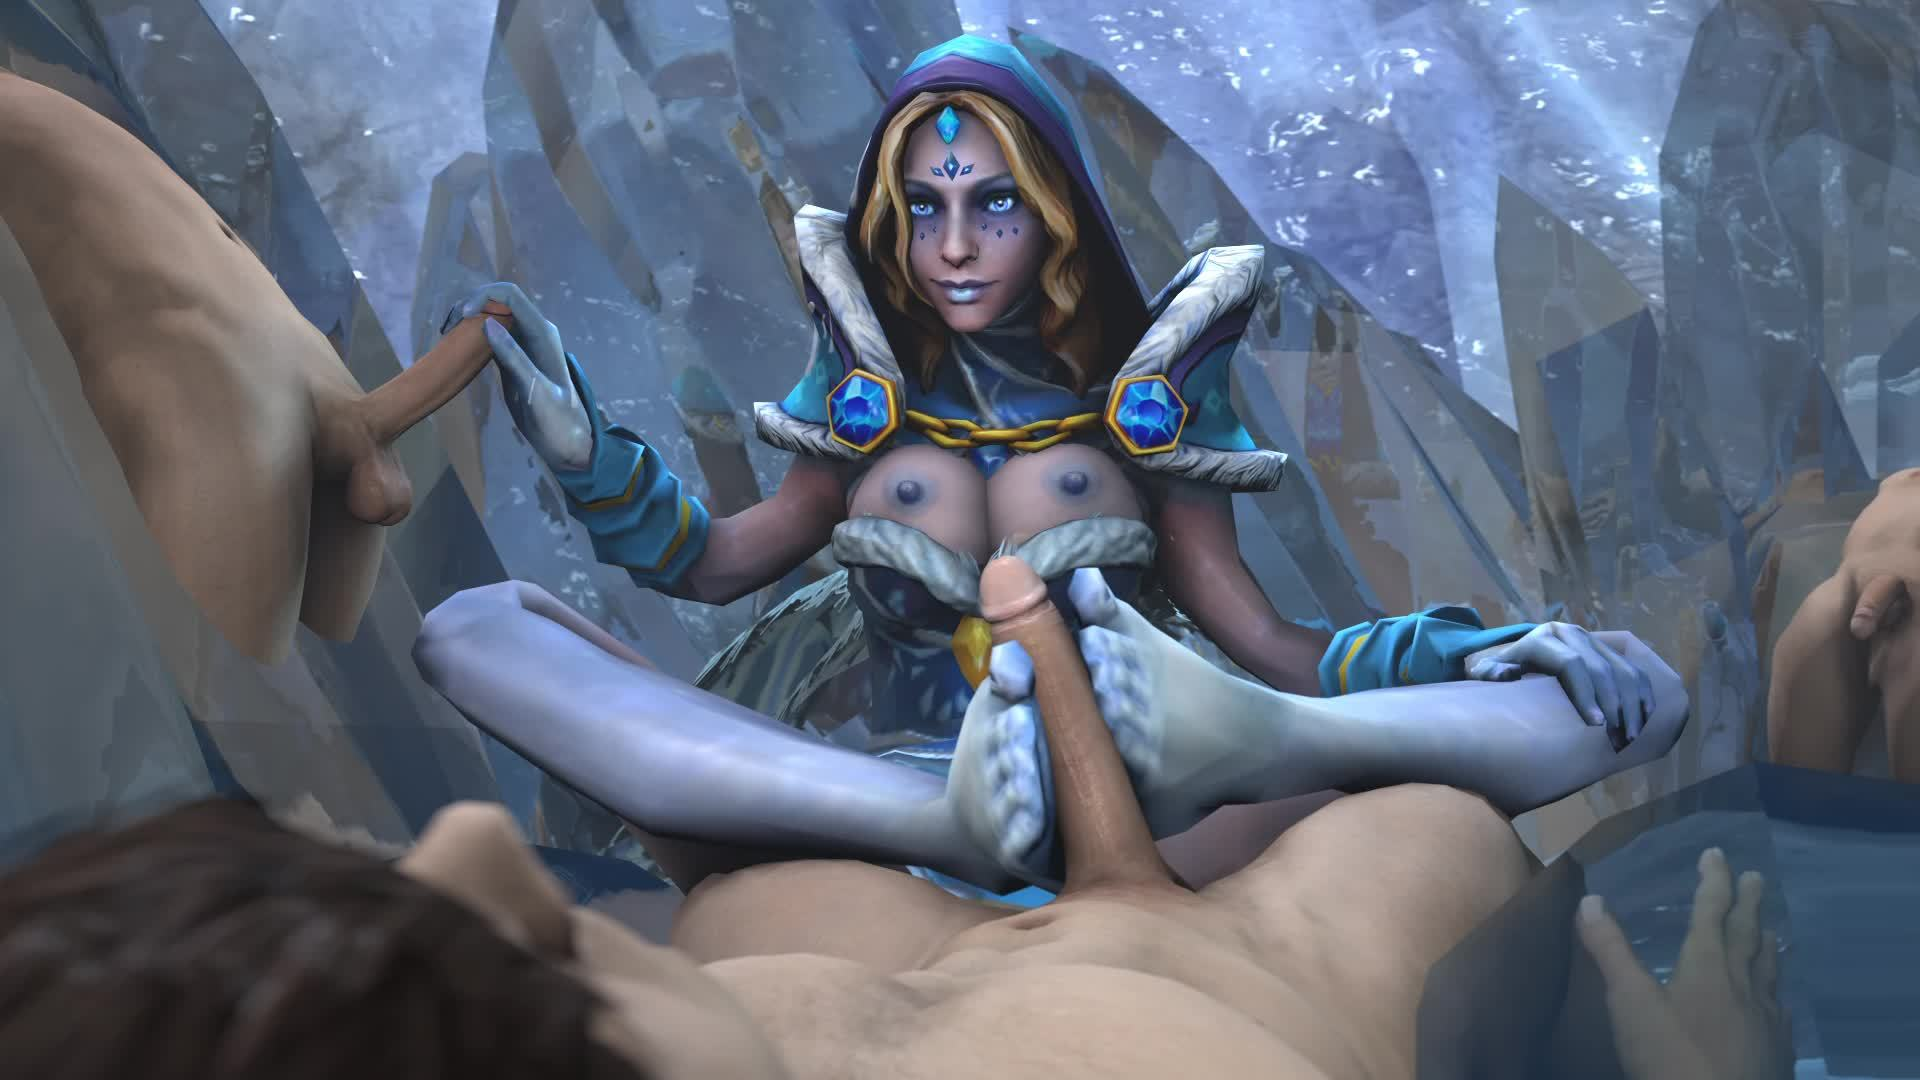 Crystal maiden porn video xxx picture